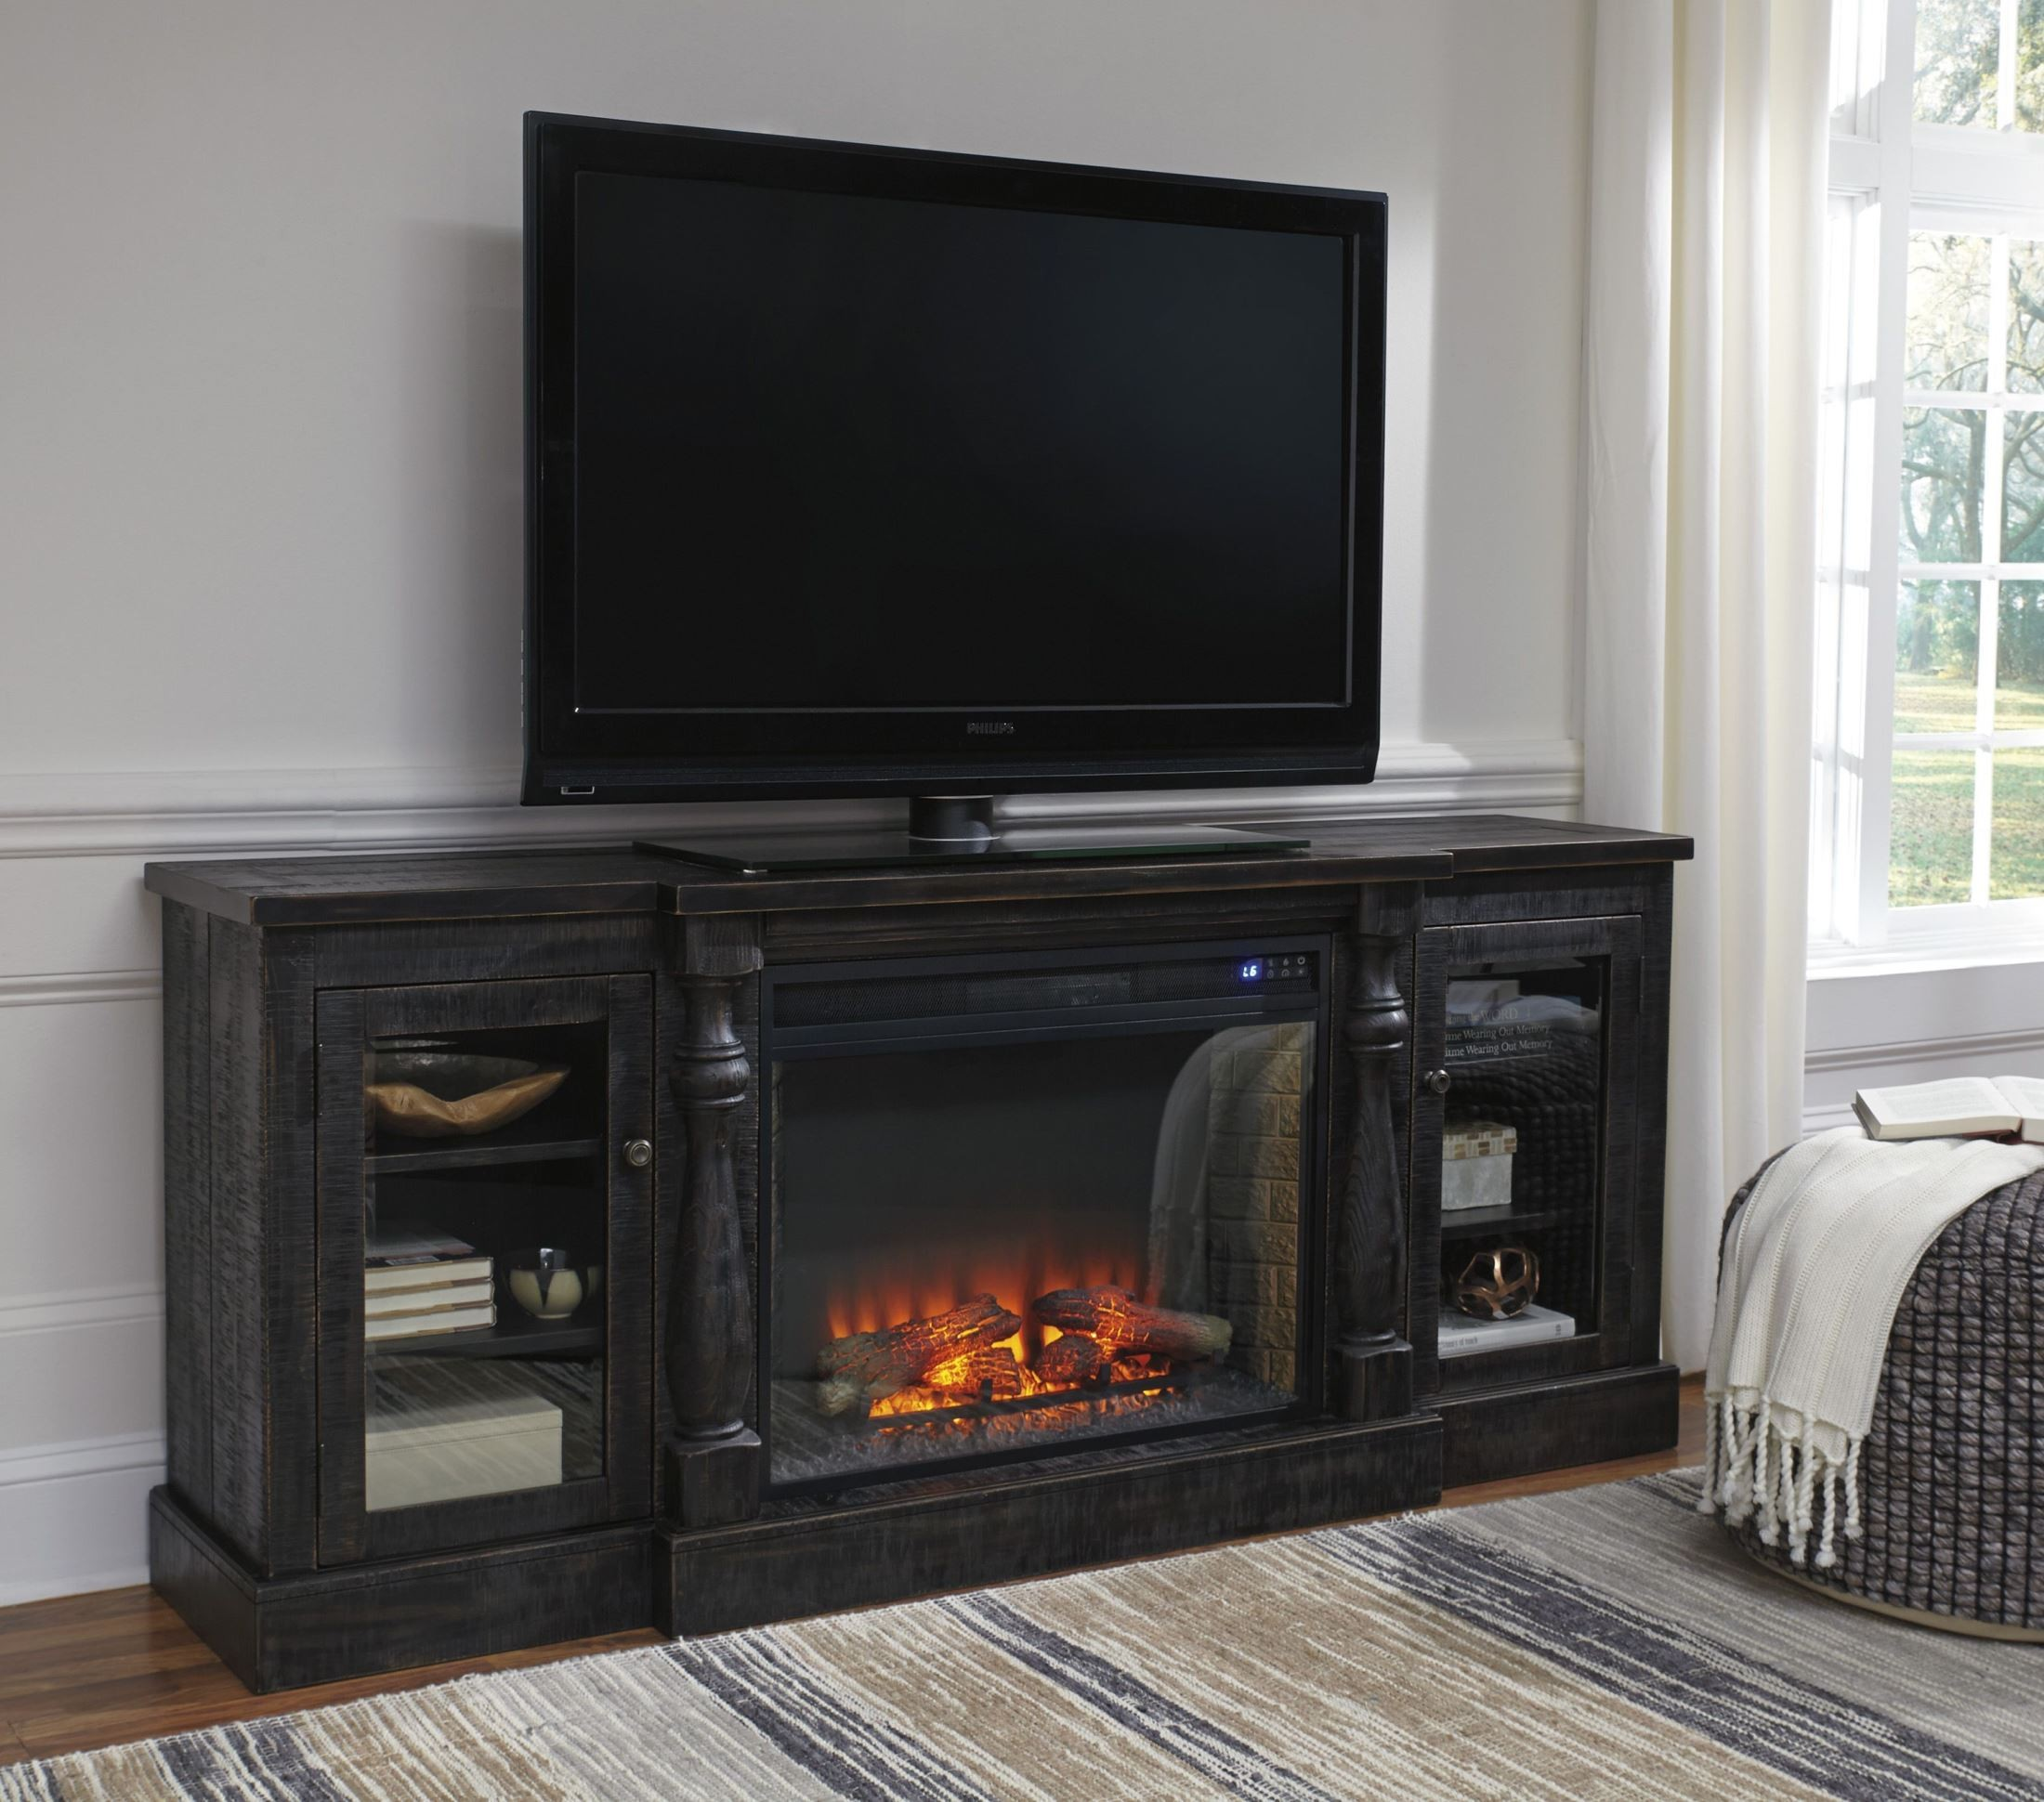 Mallacar black rub through xl tv stand with fireplace for Fireplace insert options